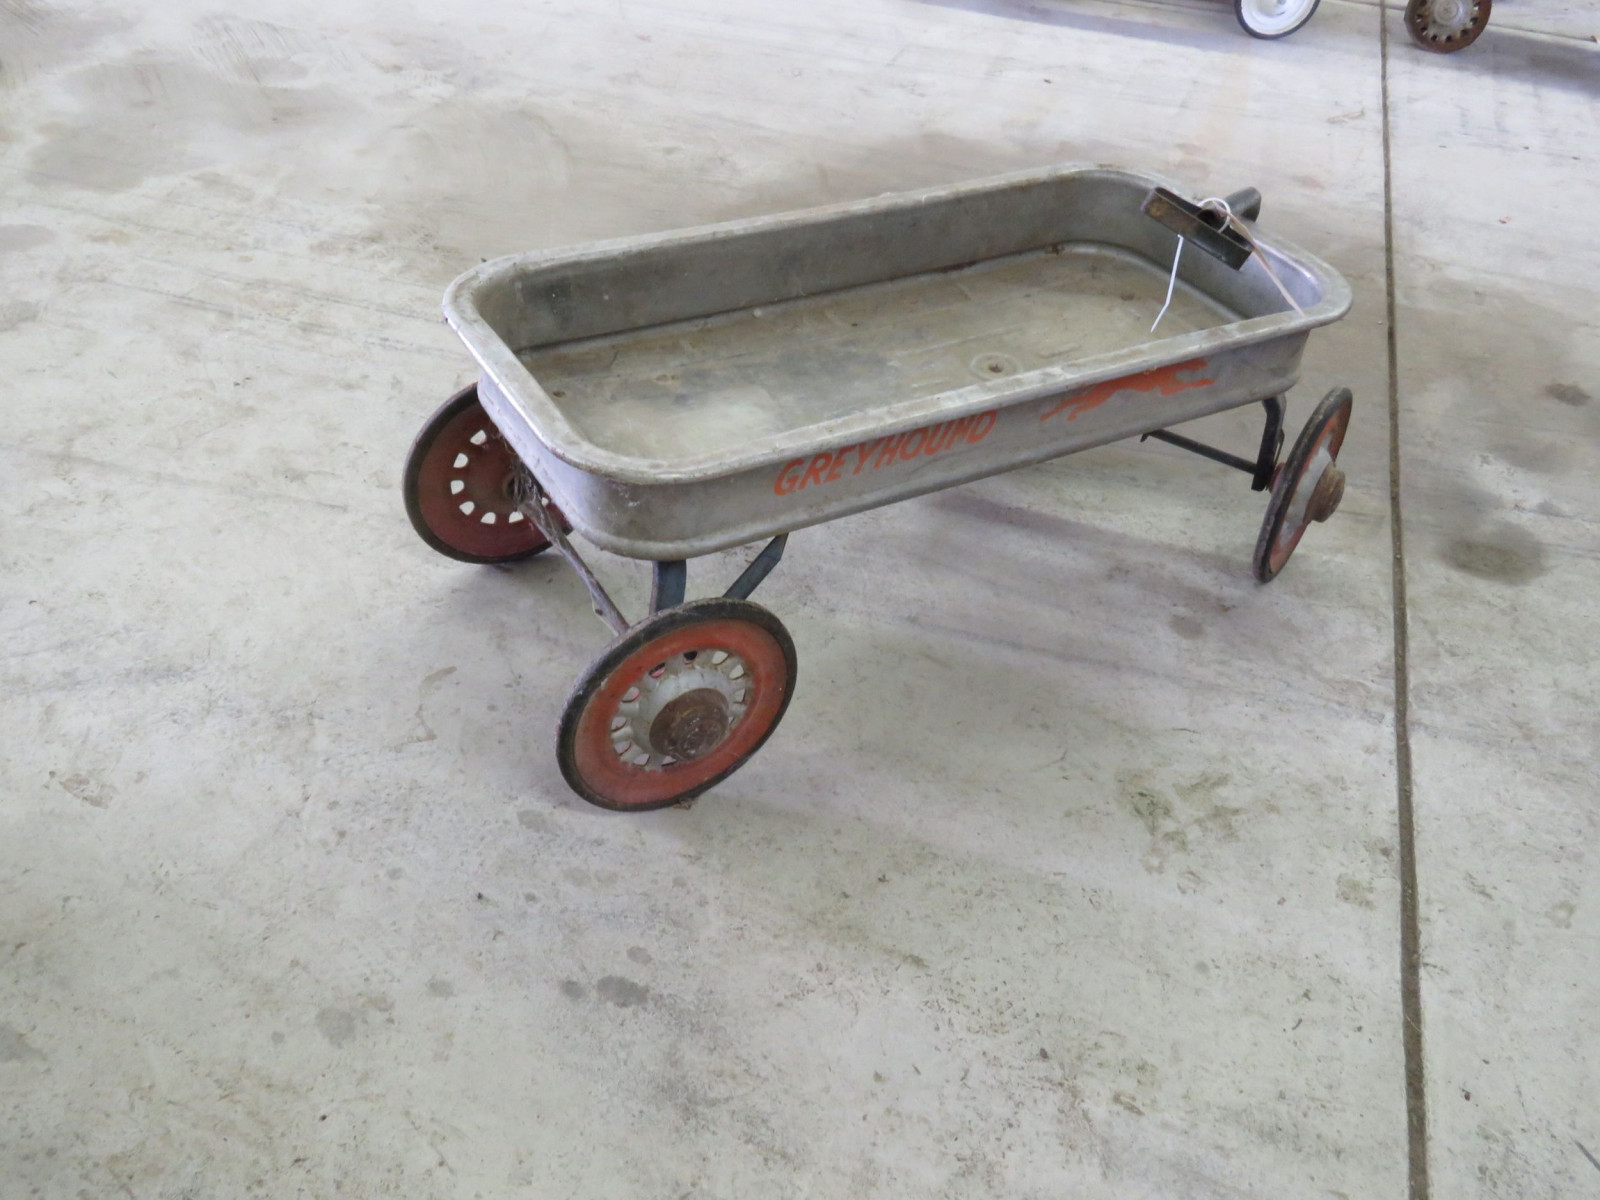 Greyhound Vintage Wagon - Image 2